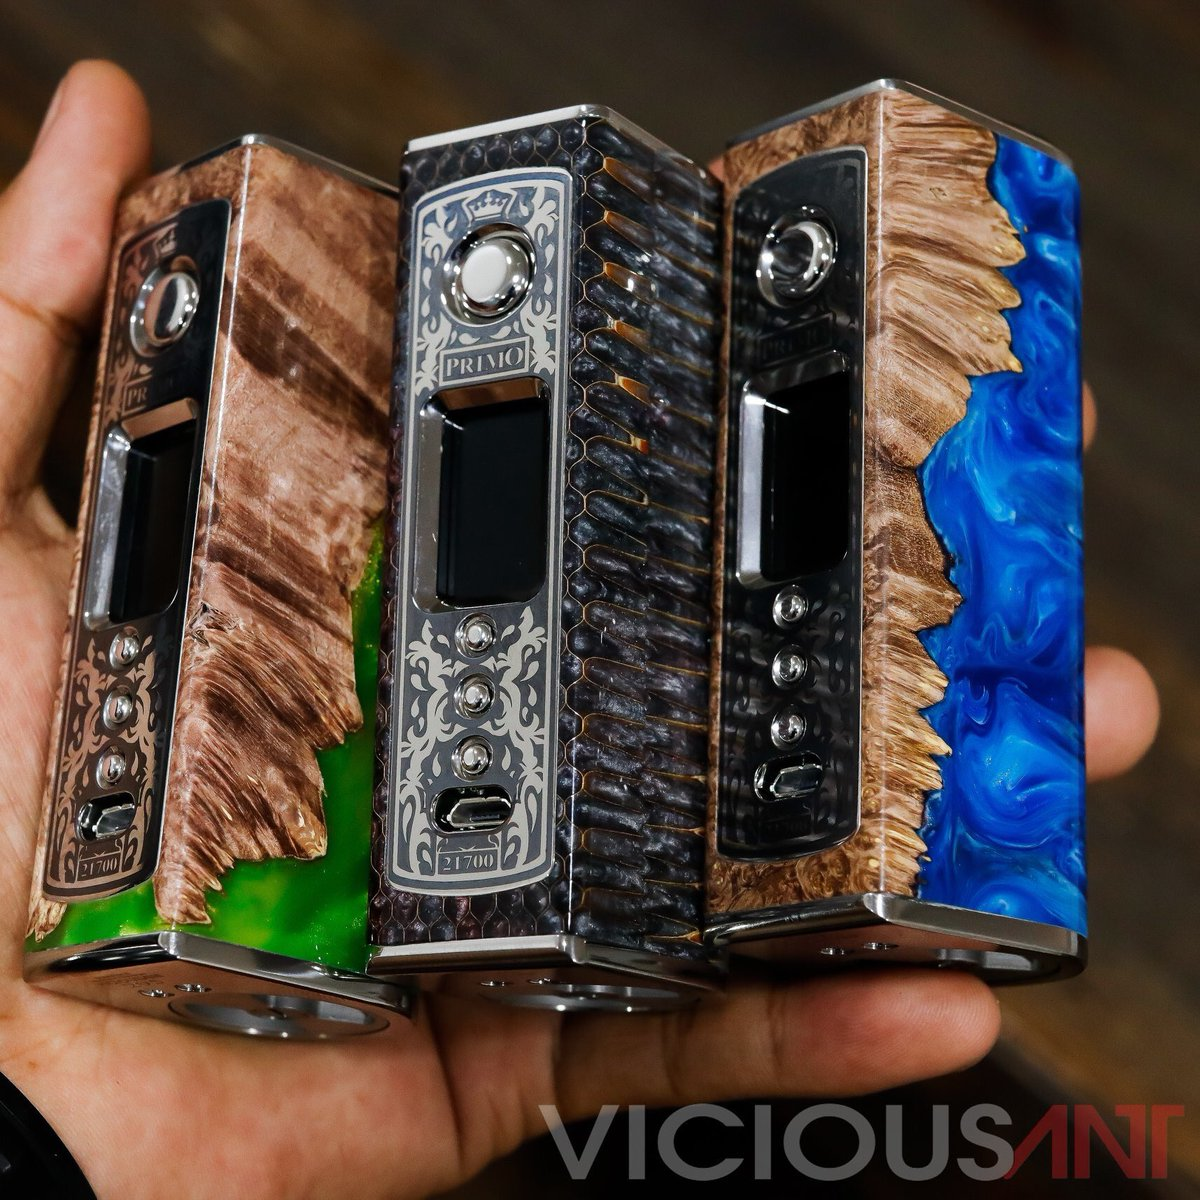 Primo DNA 75 by Vicious Ant Philippines 🇵🇭 #ViciousAnt